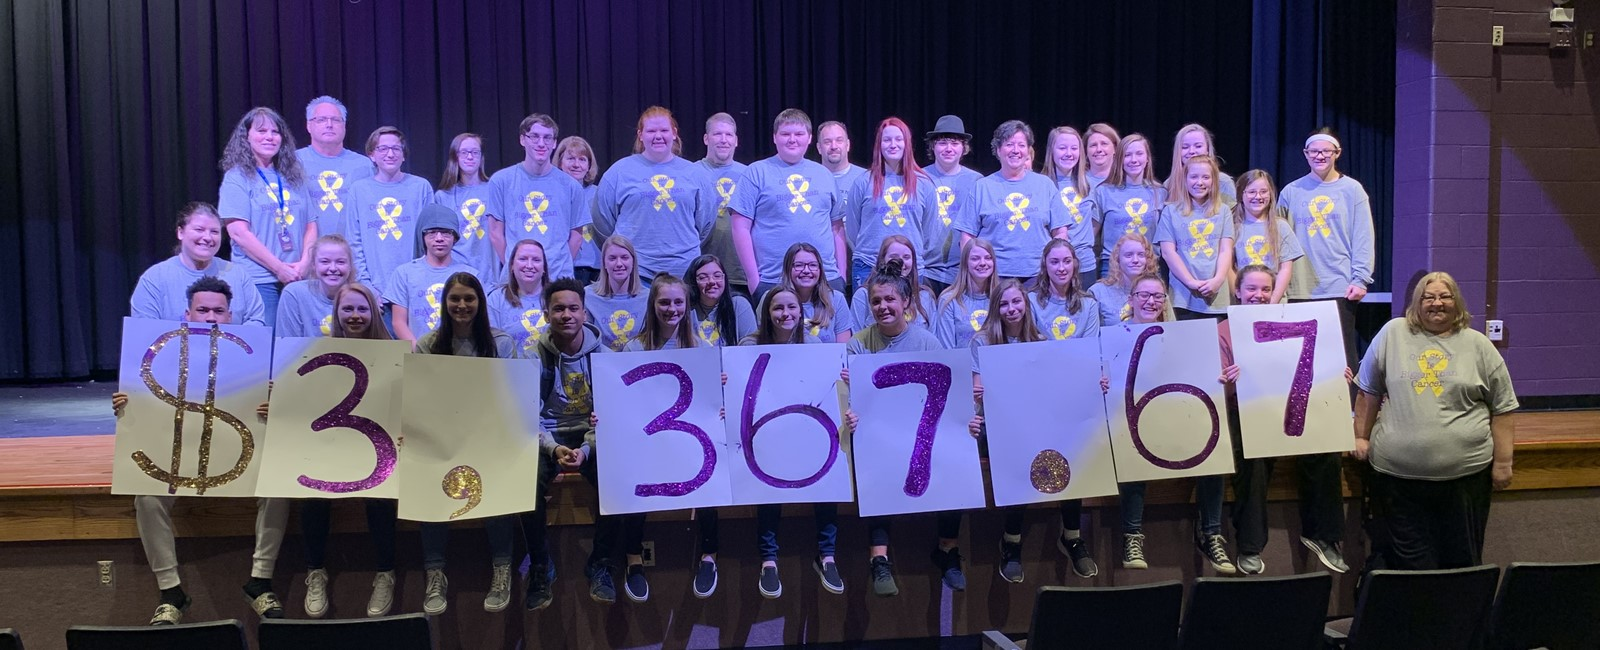 Everyone at McKinley worked together to raise $3,367.67 for #HopeForBrenden this year!